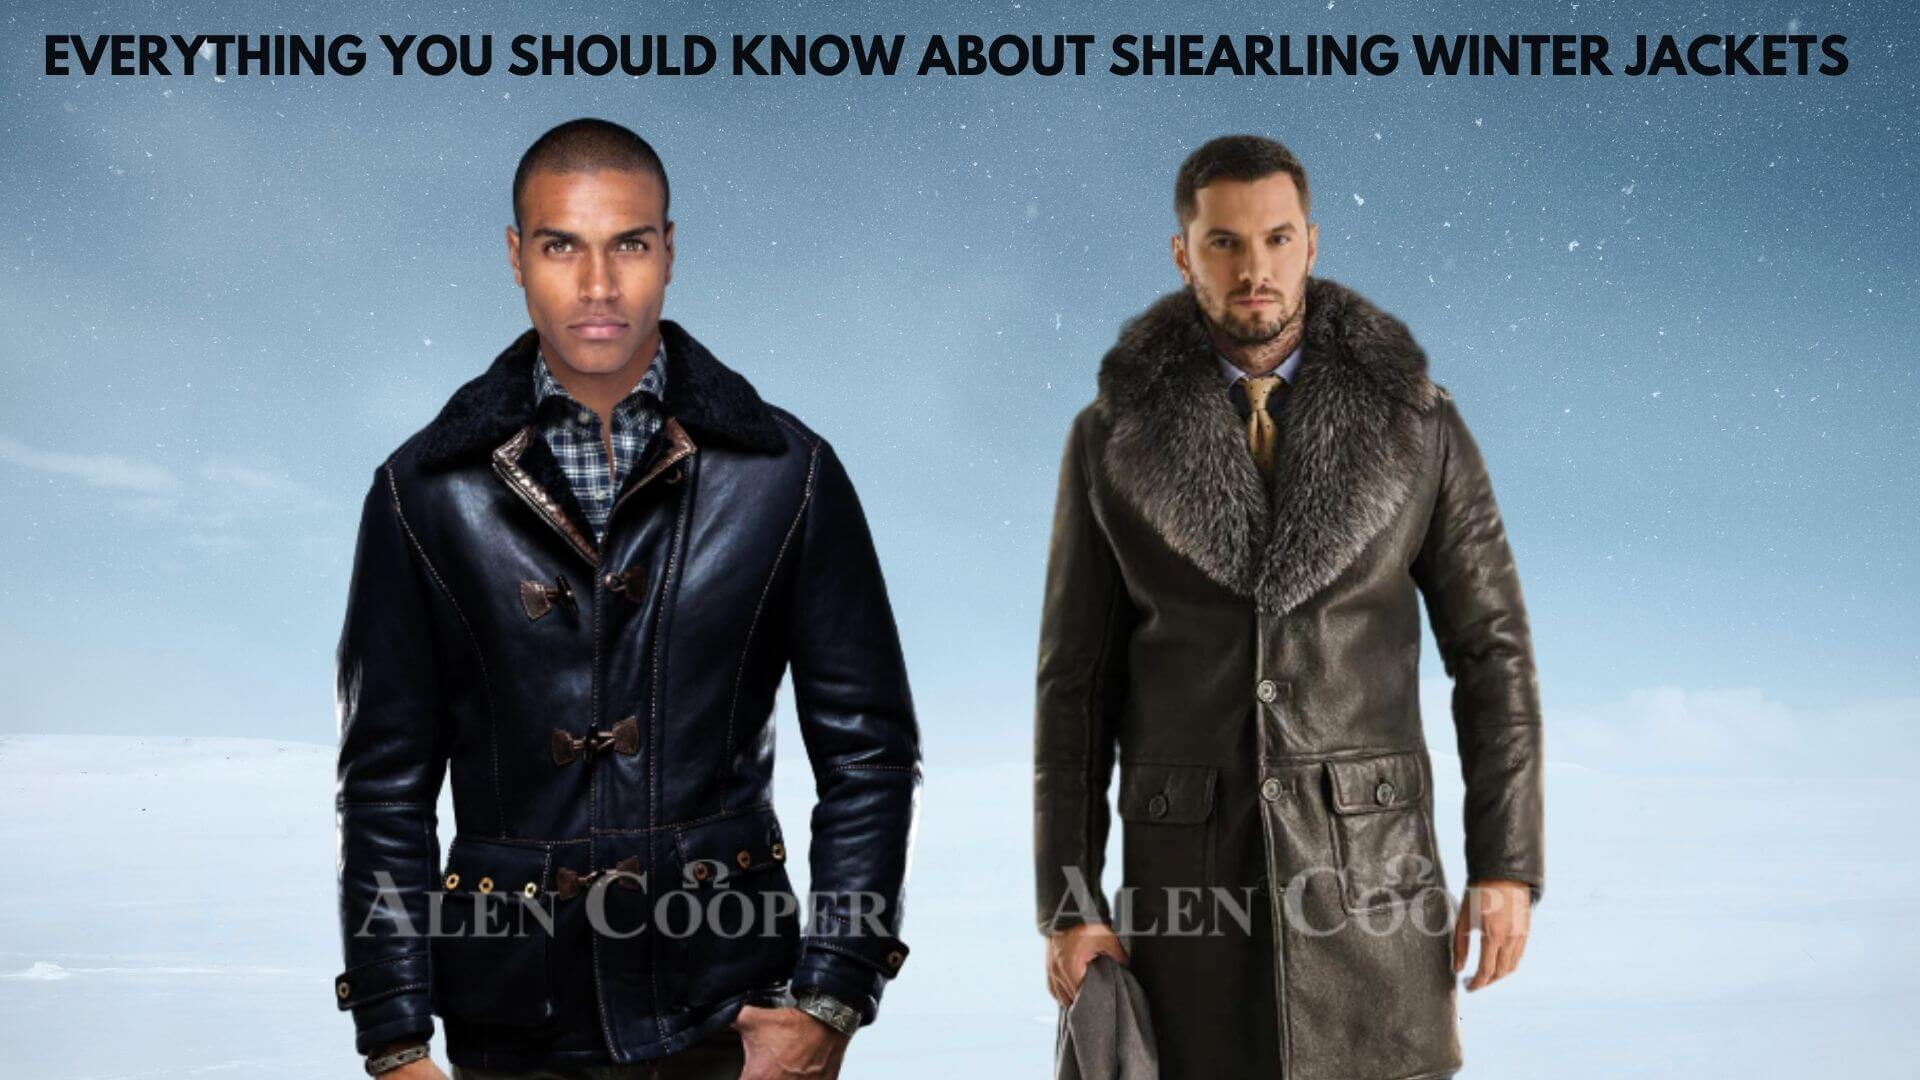 EVERYTHING YOU SHOULD KNOW ABOUT SHEARLING WINTER JACKETS